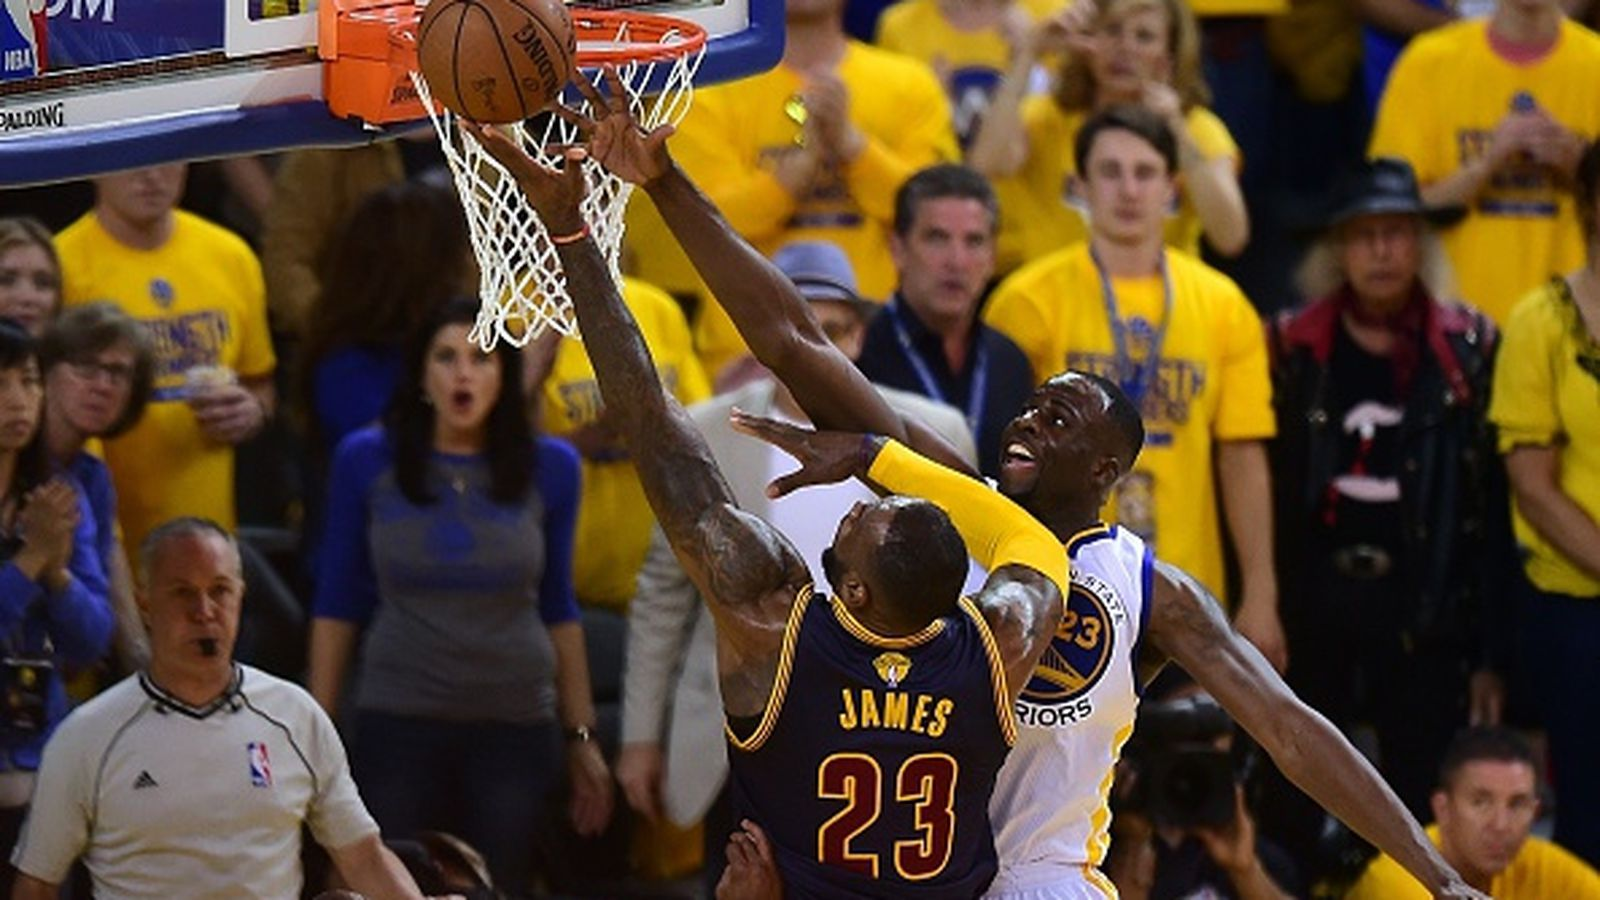 Draymond-green-of-the-golden-state-warriors-blocks-an-attempt-by-lebron-james-of-the-cleveland-cavaliers.0